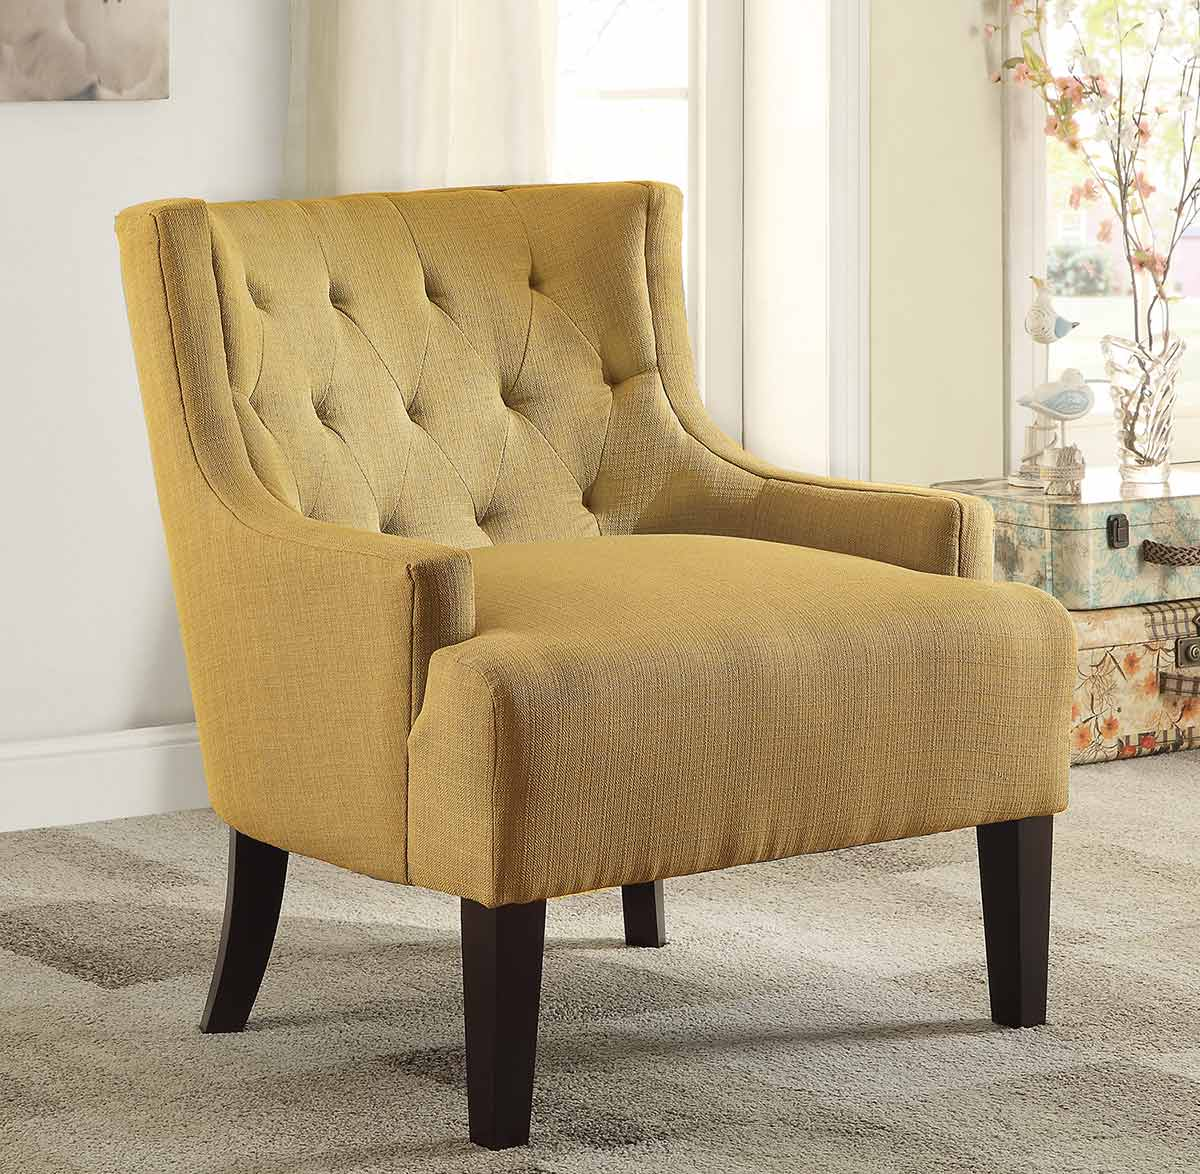 homelegance dulce accent chair mustard 1233md at. Black Bedroom Furniture Sets. Home Design Ideas